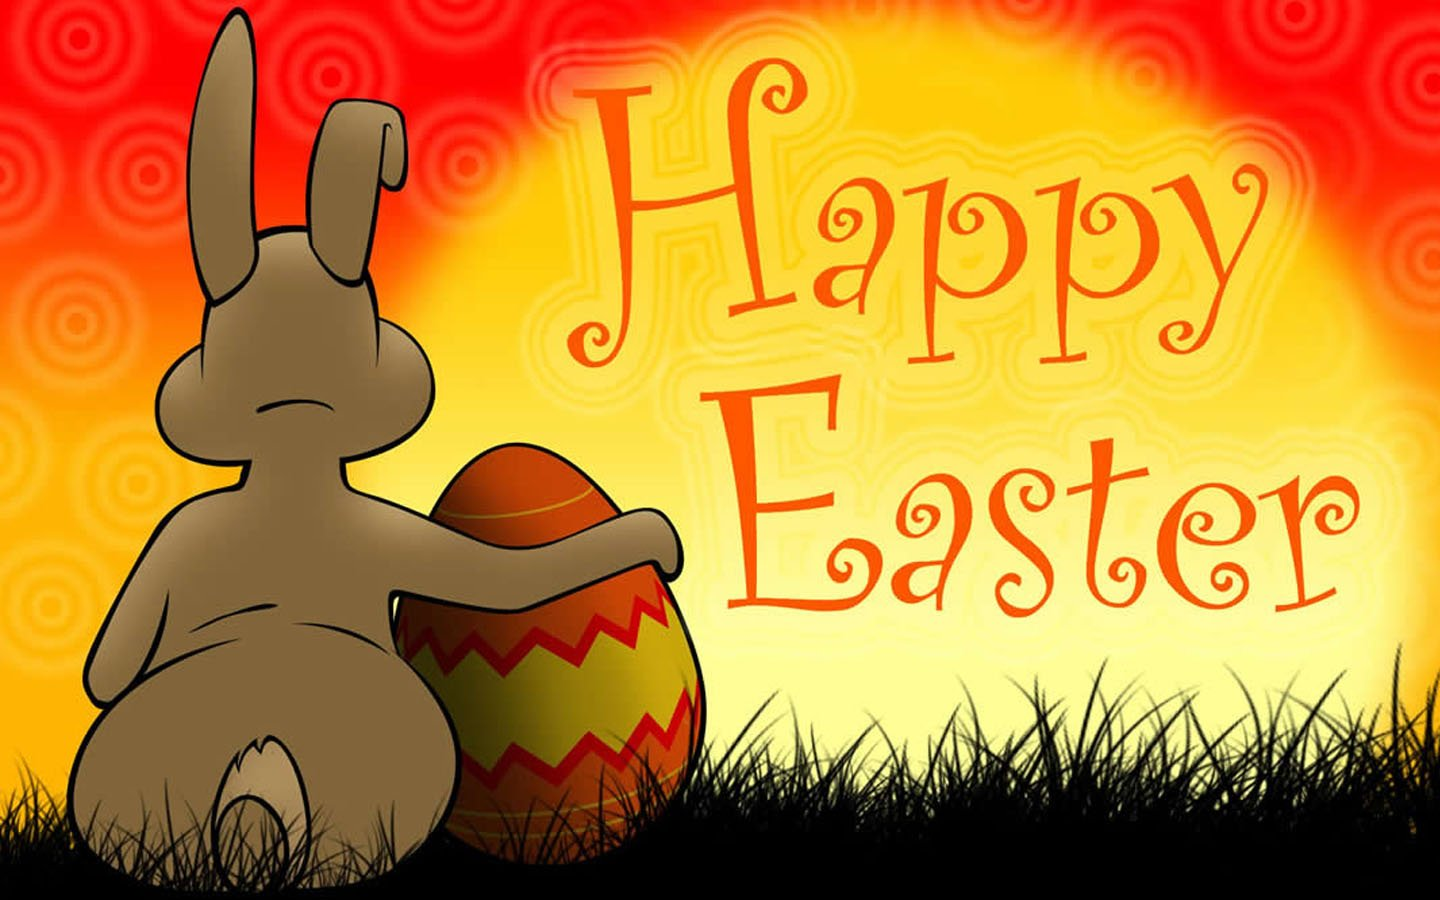 ZooZooReview: Happy Easter From ZOOZOOReview